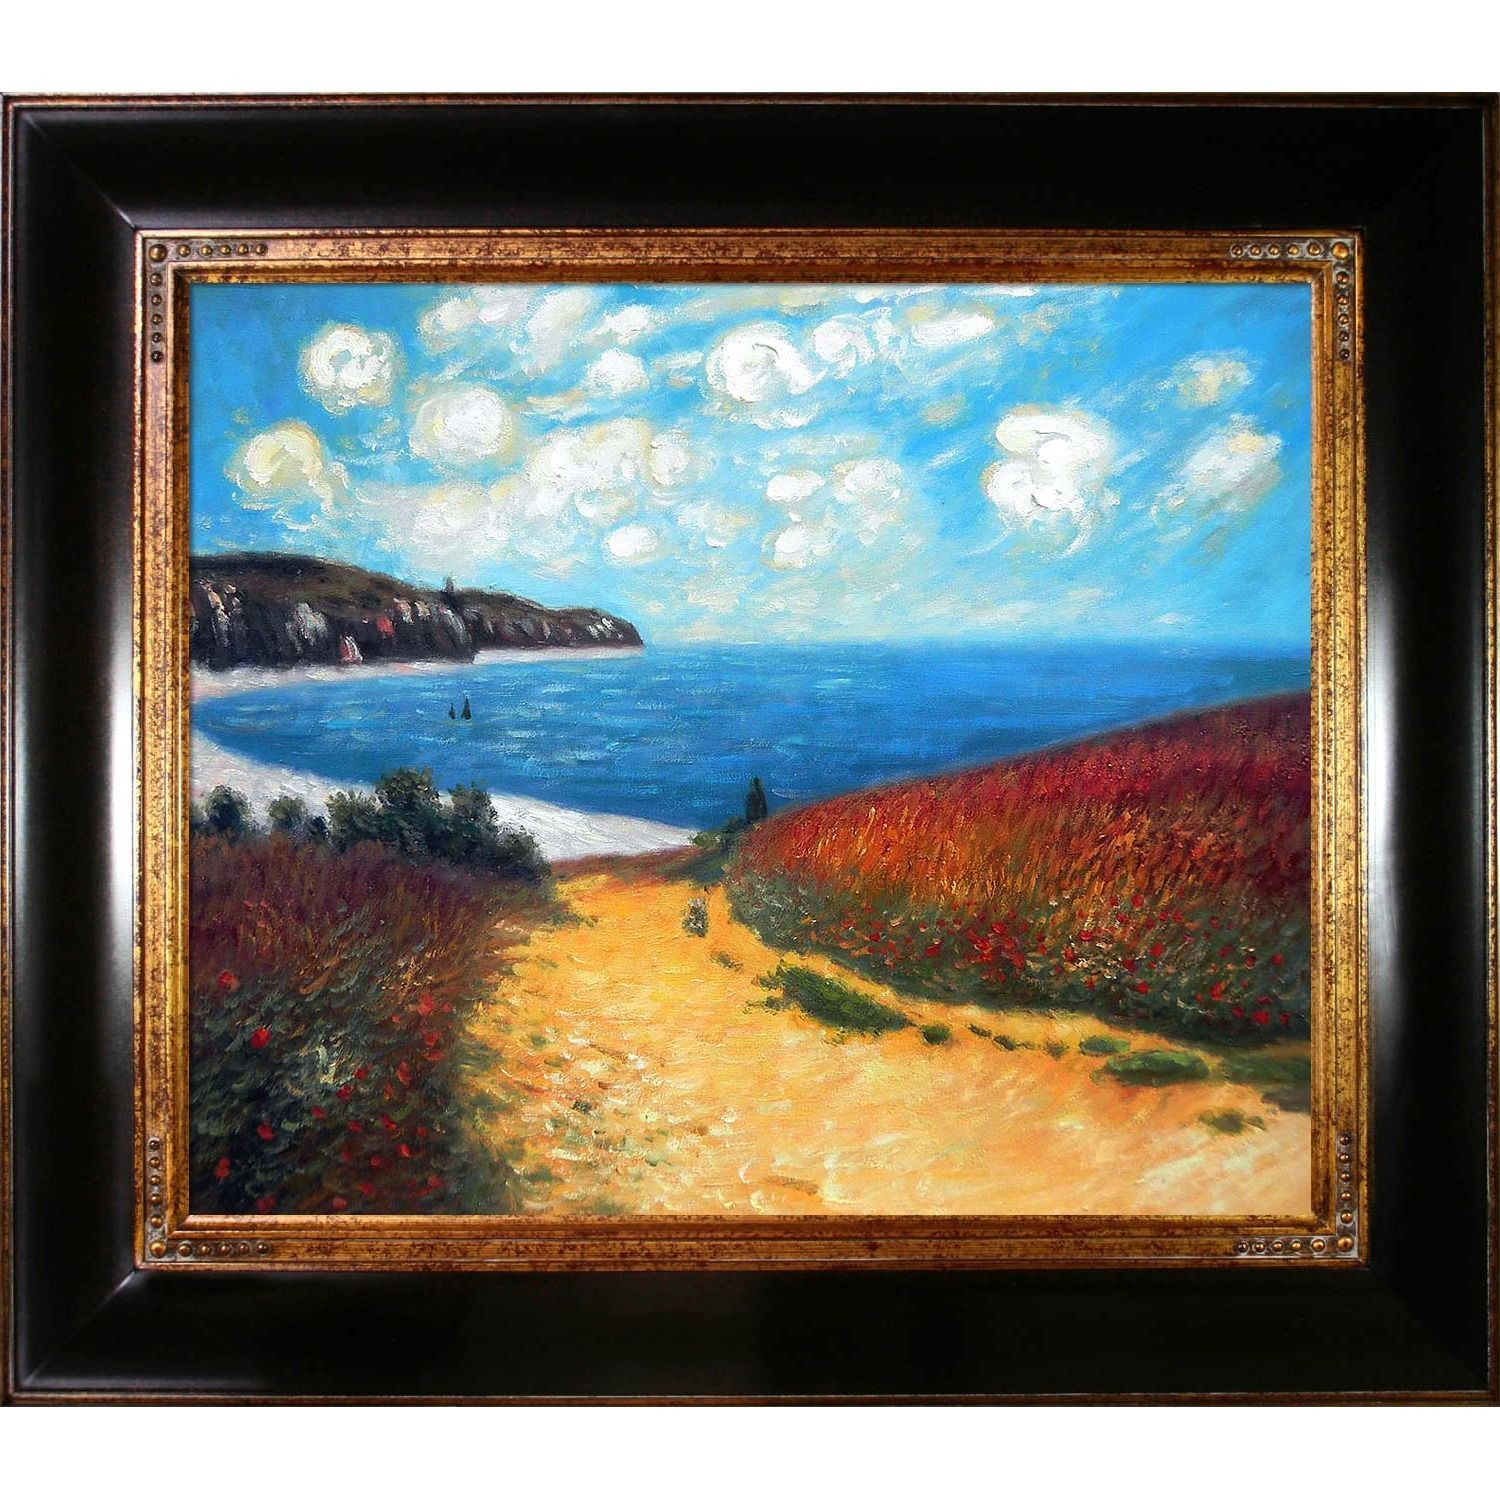 Claude Monet Meadow Road To Pourville 1882 Hand Painted 33 Inch Framed Canvas Art Monet Meadow Road Framed Oil Framed Canvas Art Hand Painting Art Painting